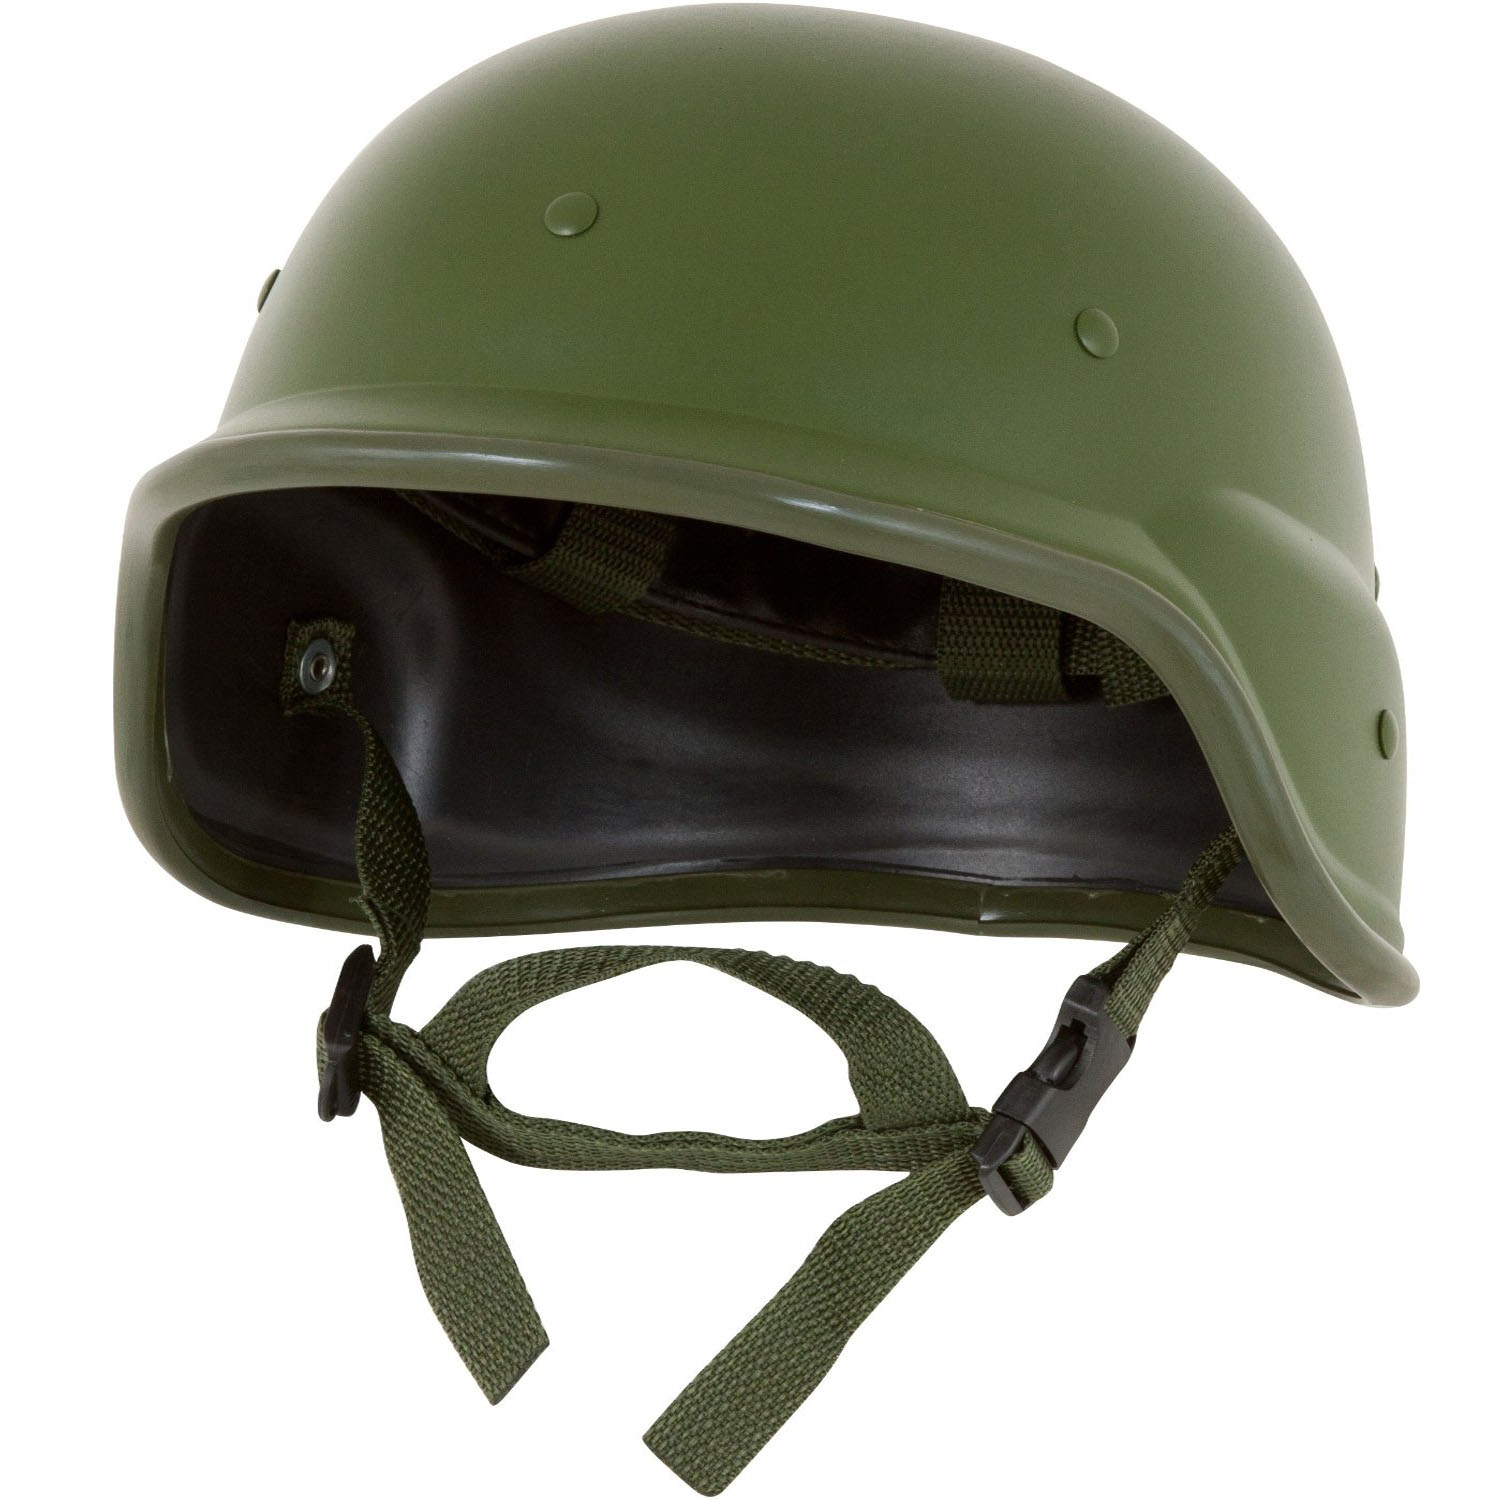 Tactical M88 U s Army Replica Helmet Airsoft Full Head ...